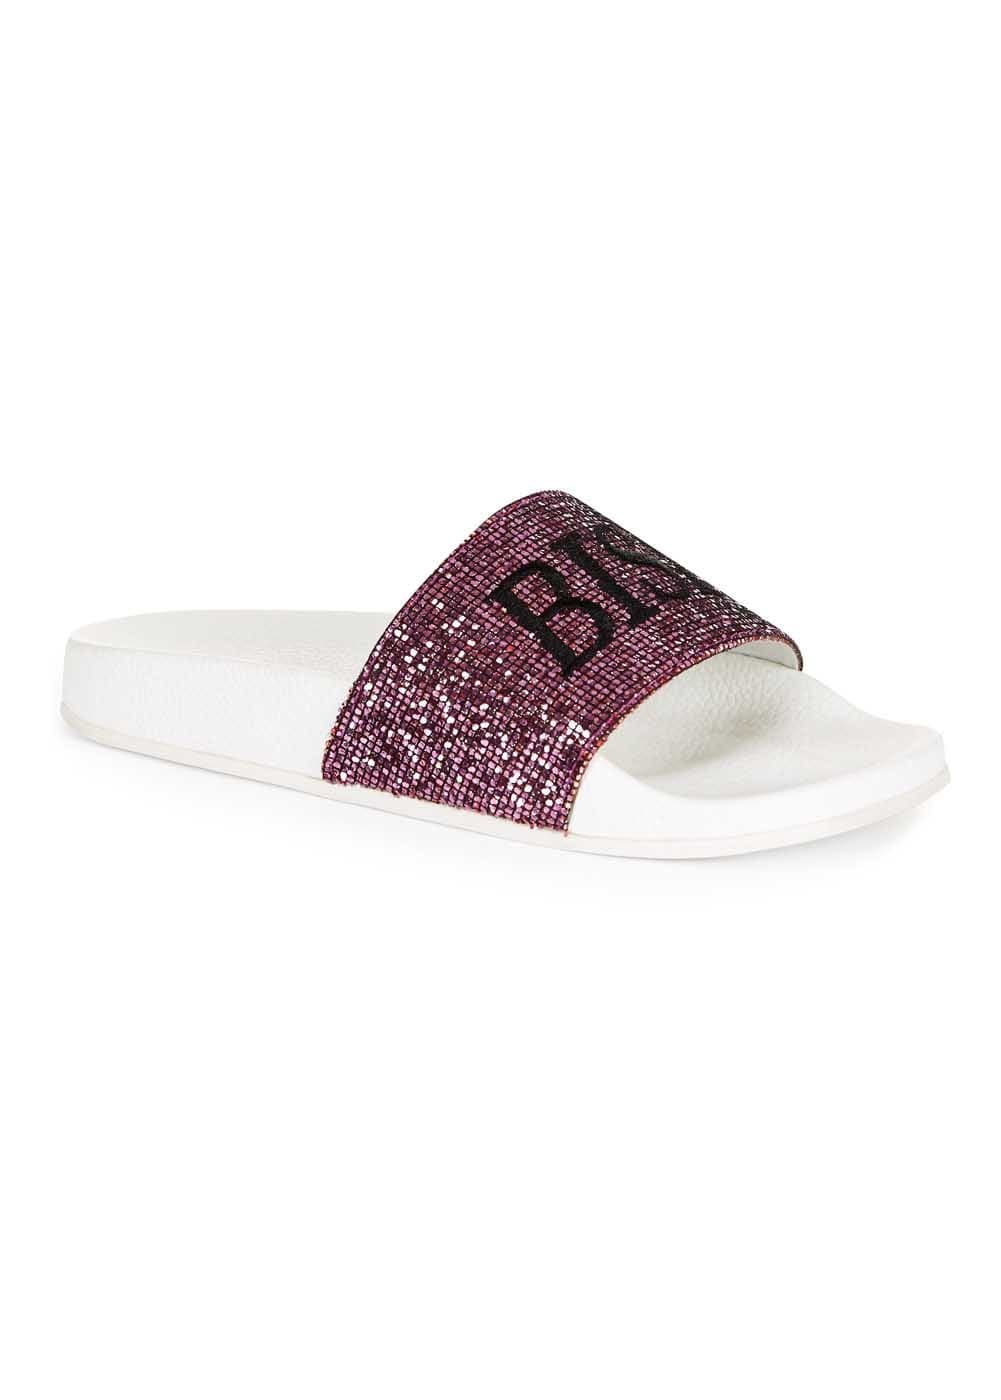 Teenzshop Bish Please Pool Sliders